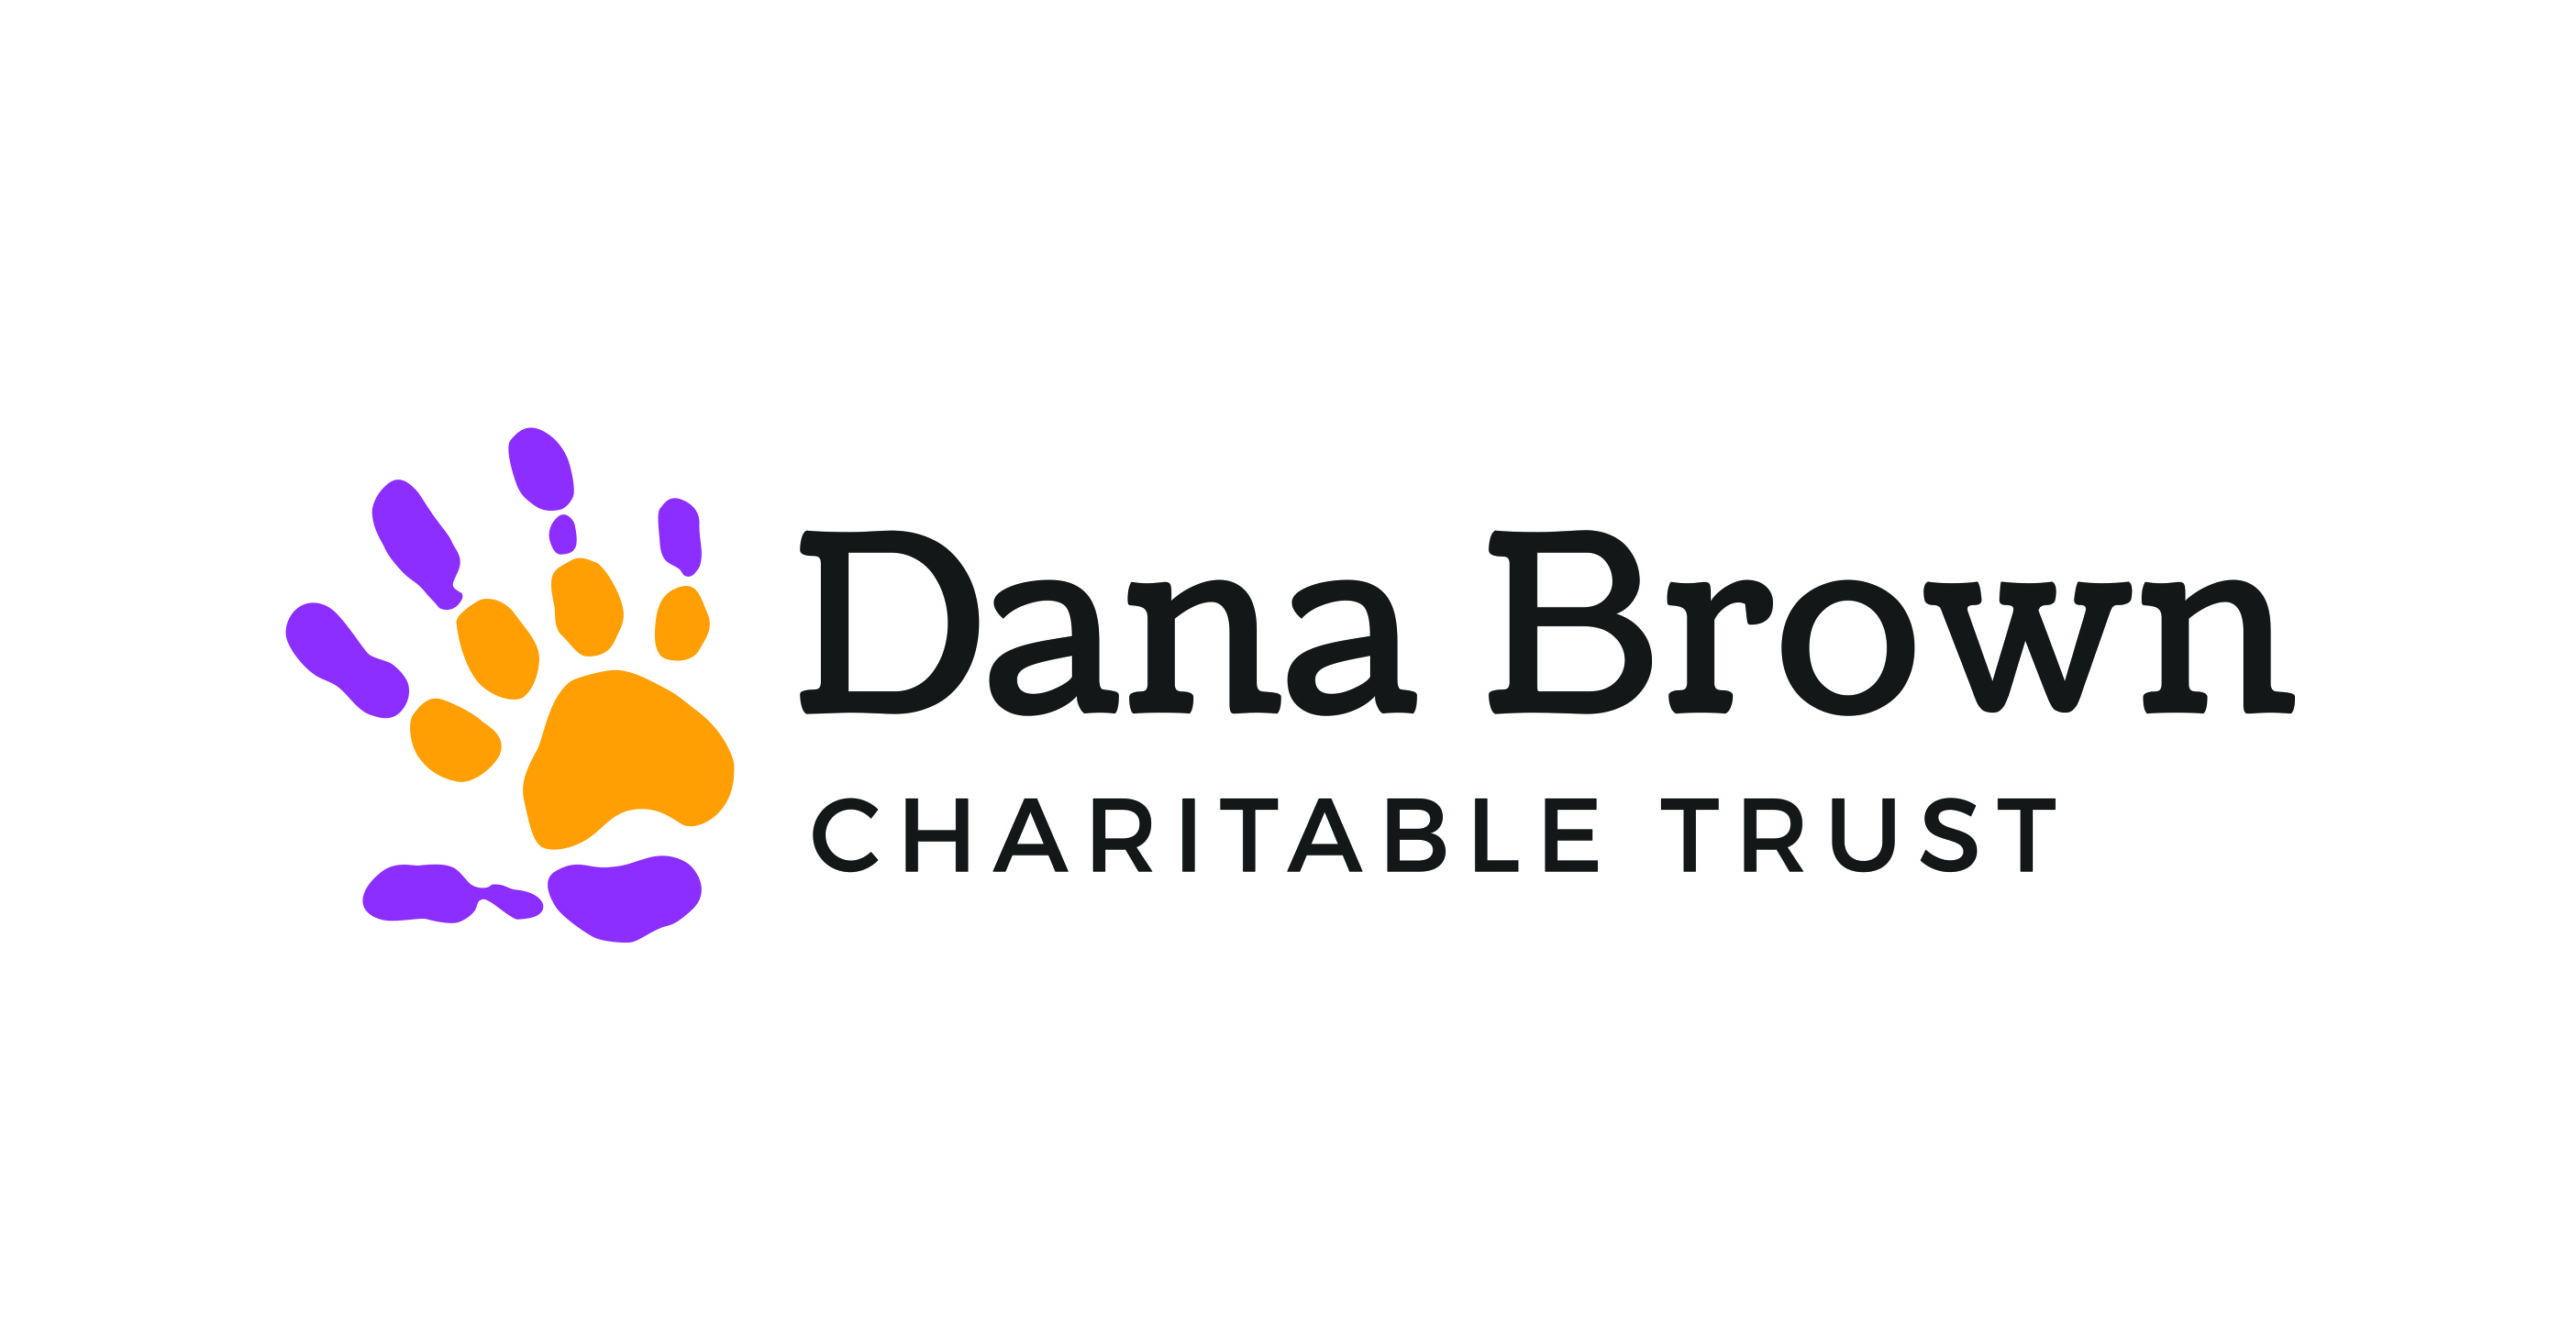 gkaspartnerlogos_0004_Dana-Brown-Logo-primary-color-rgb-07.19.16.jpg